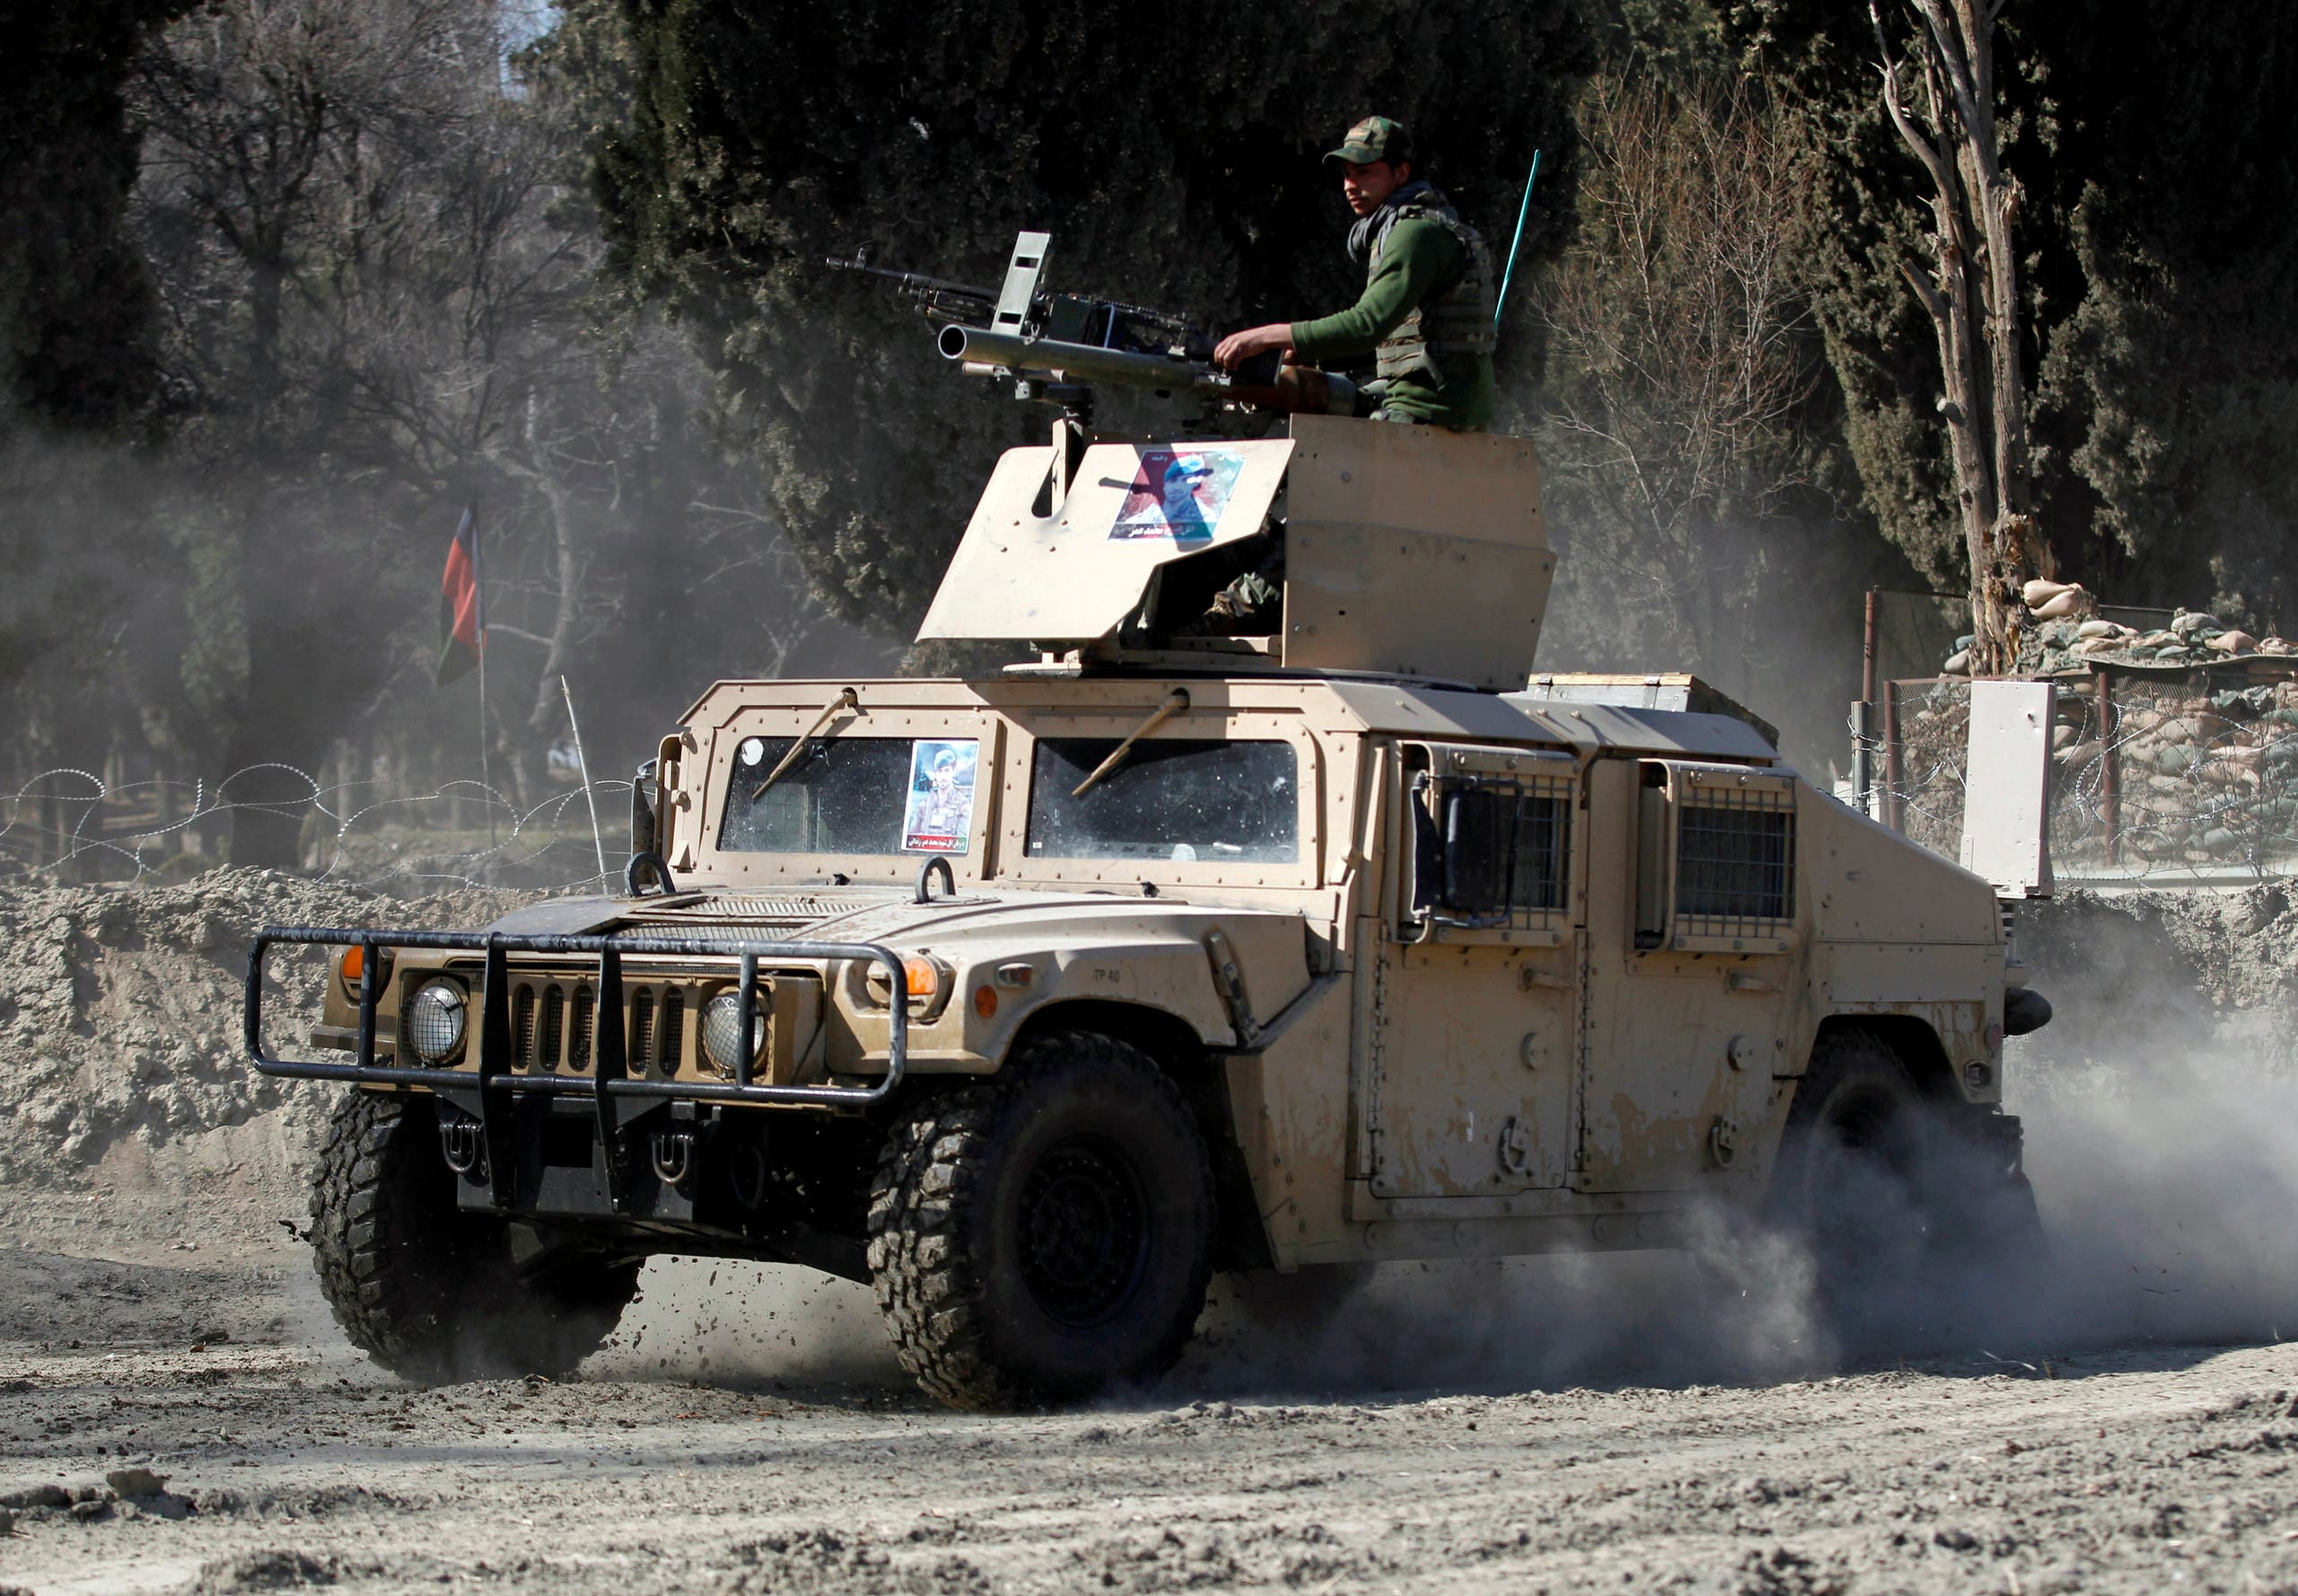 An armored vehicle patrols near the side of an incident where two US soldiers were killed a day before in Shirzad district of Nangarhar province, Afghanistan February 9, 2020. (Reuters)